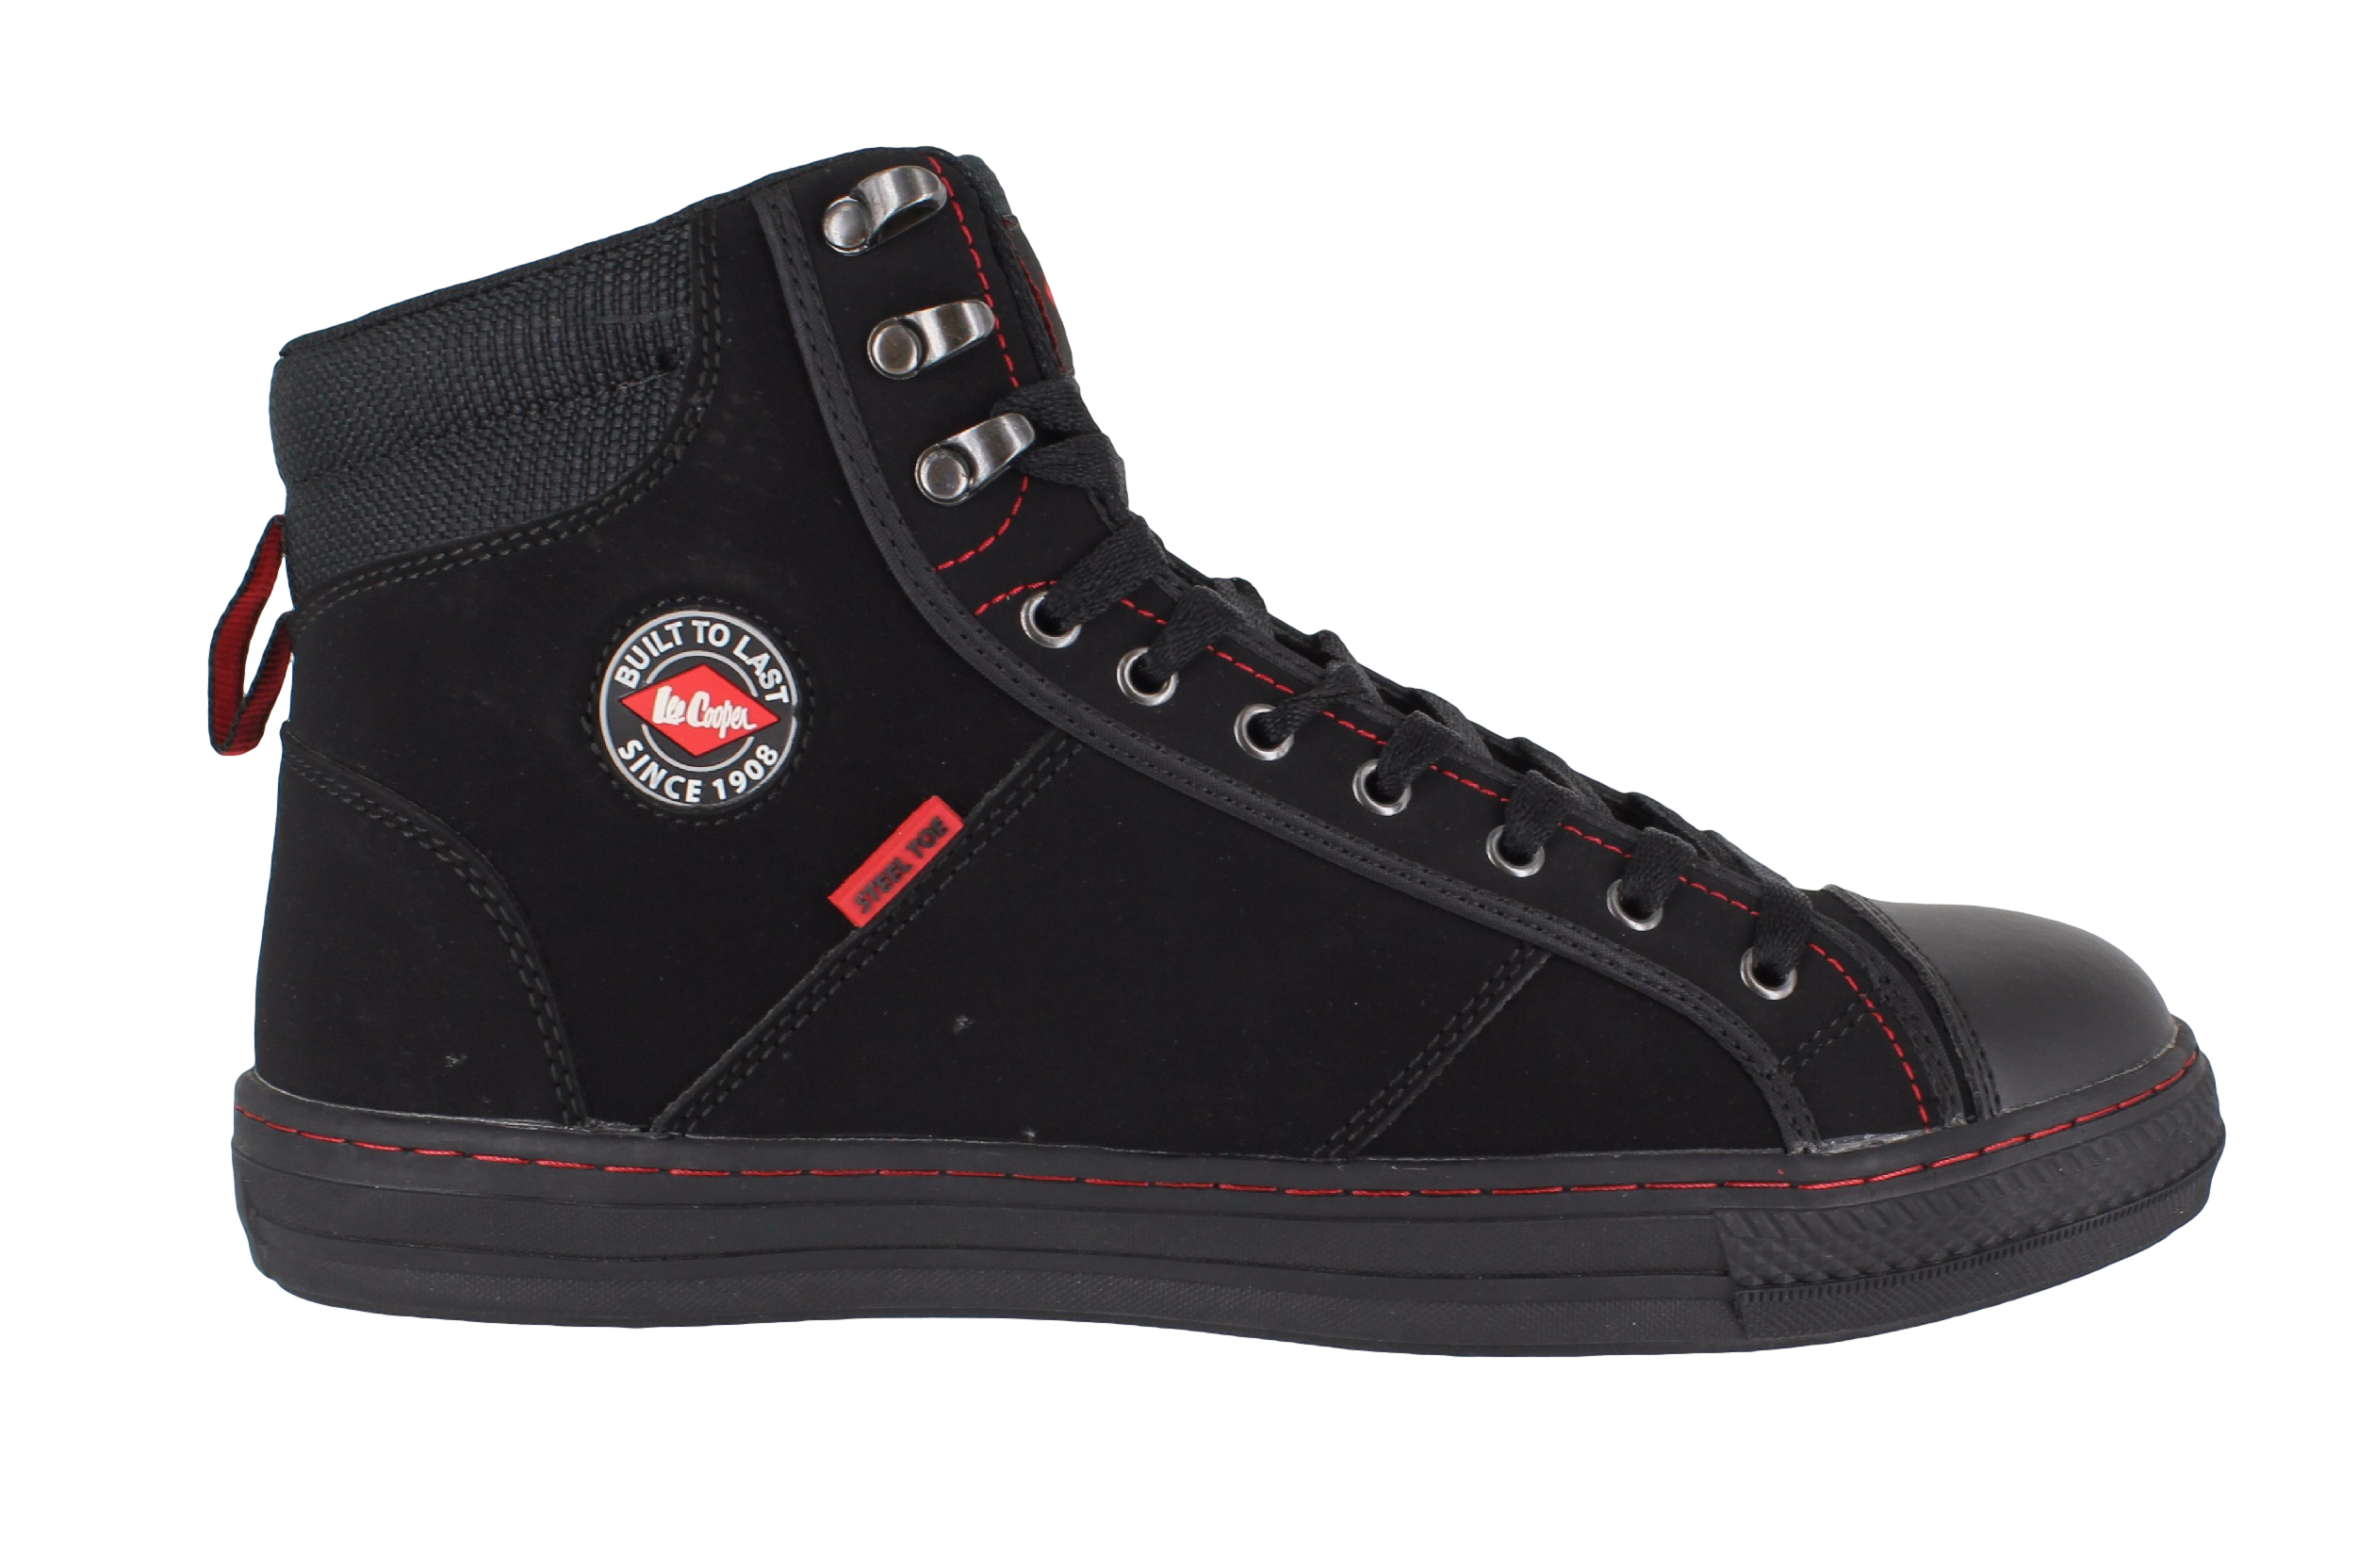 Lee Cooper 022 - Unisex Hi Top Style Safety Boots - Steel Toe Cap  52393a9ed